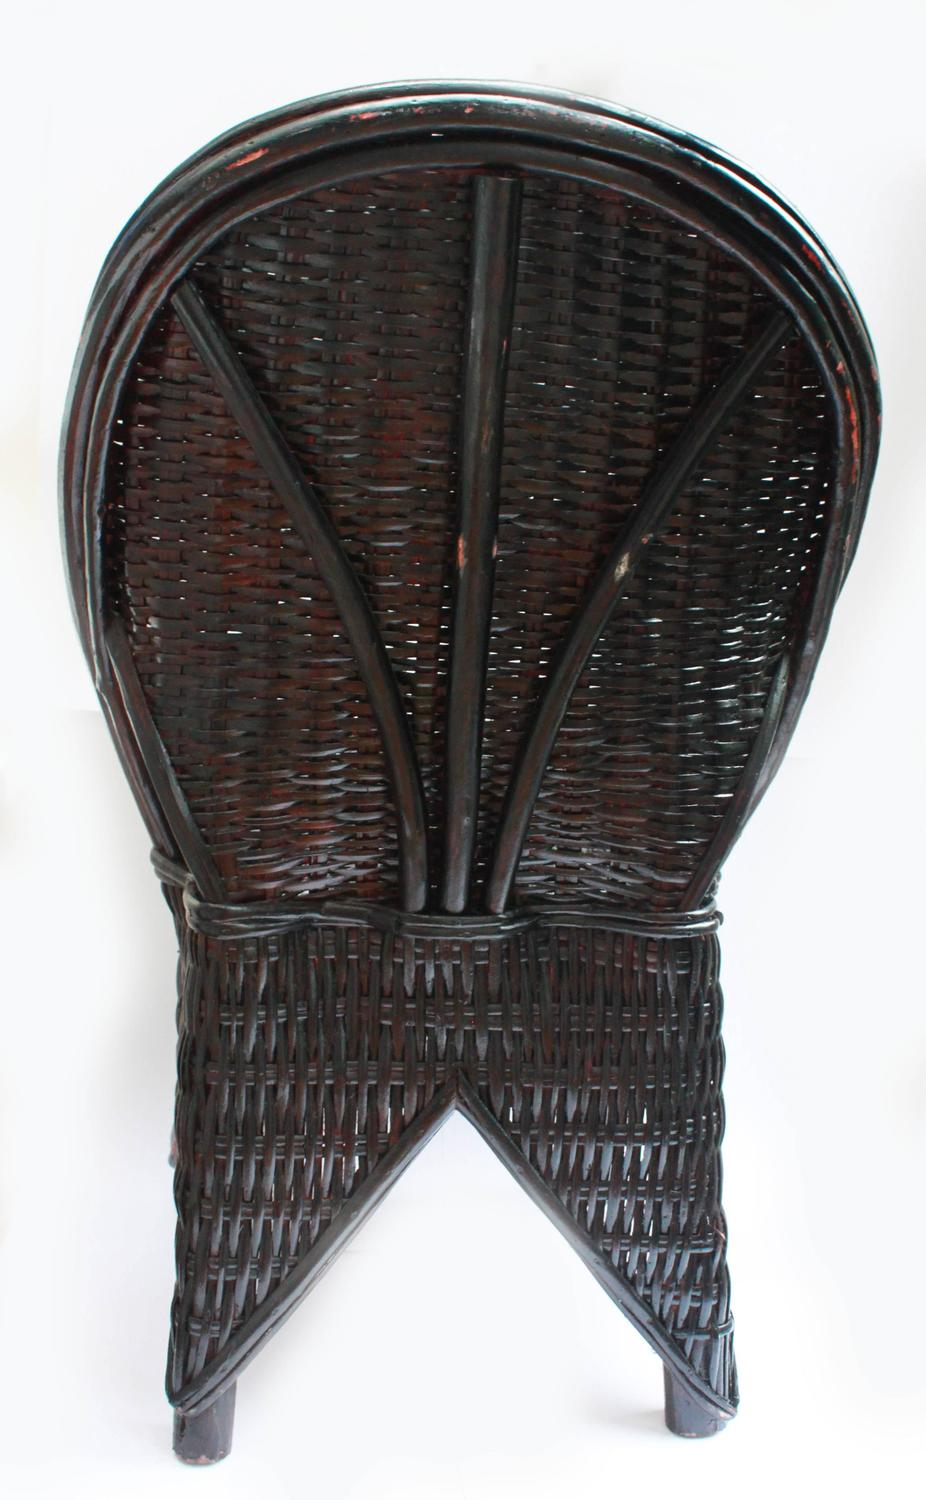 Black Wicker Chair Handmade in Morocco For Sale at 1stdibs